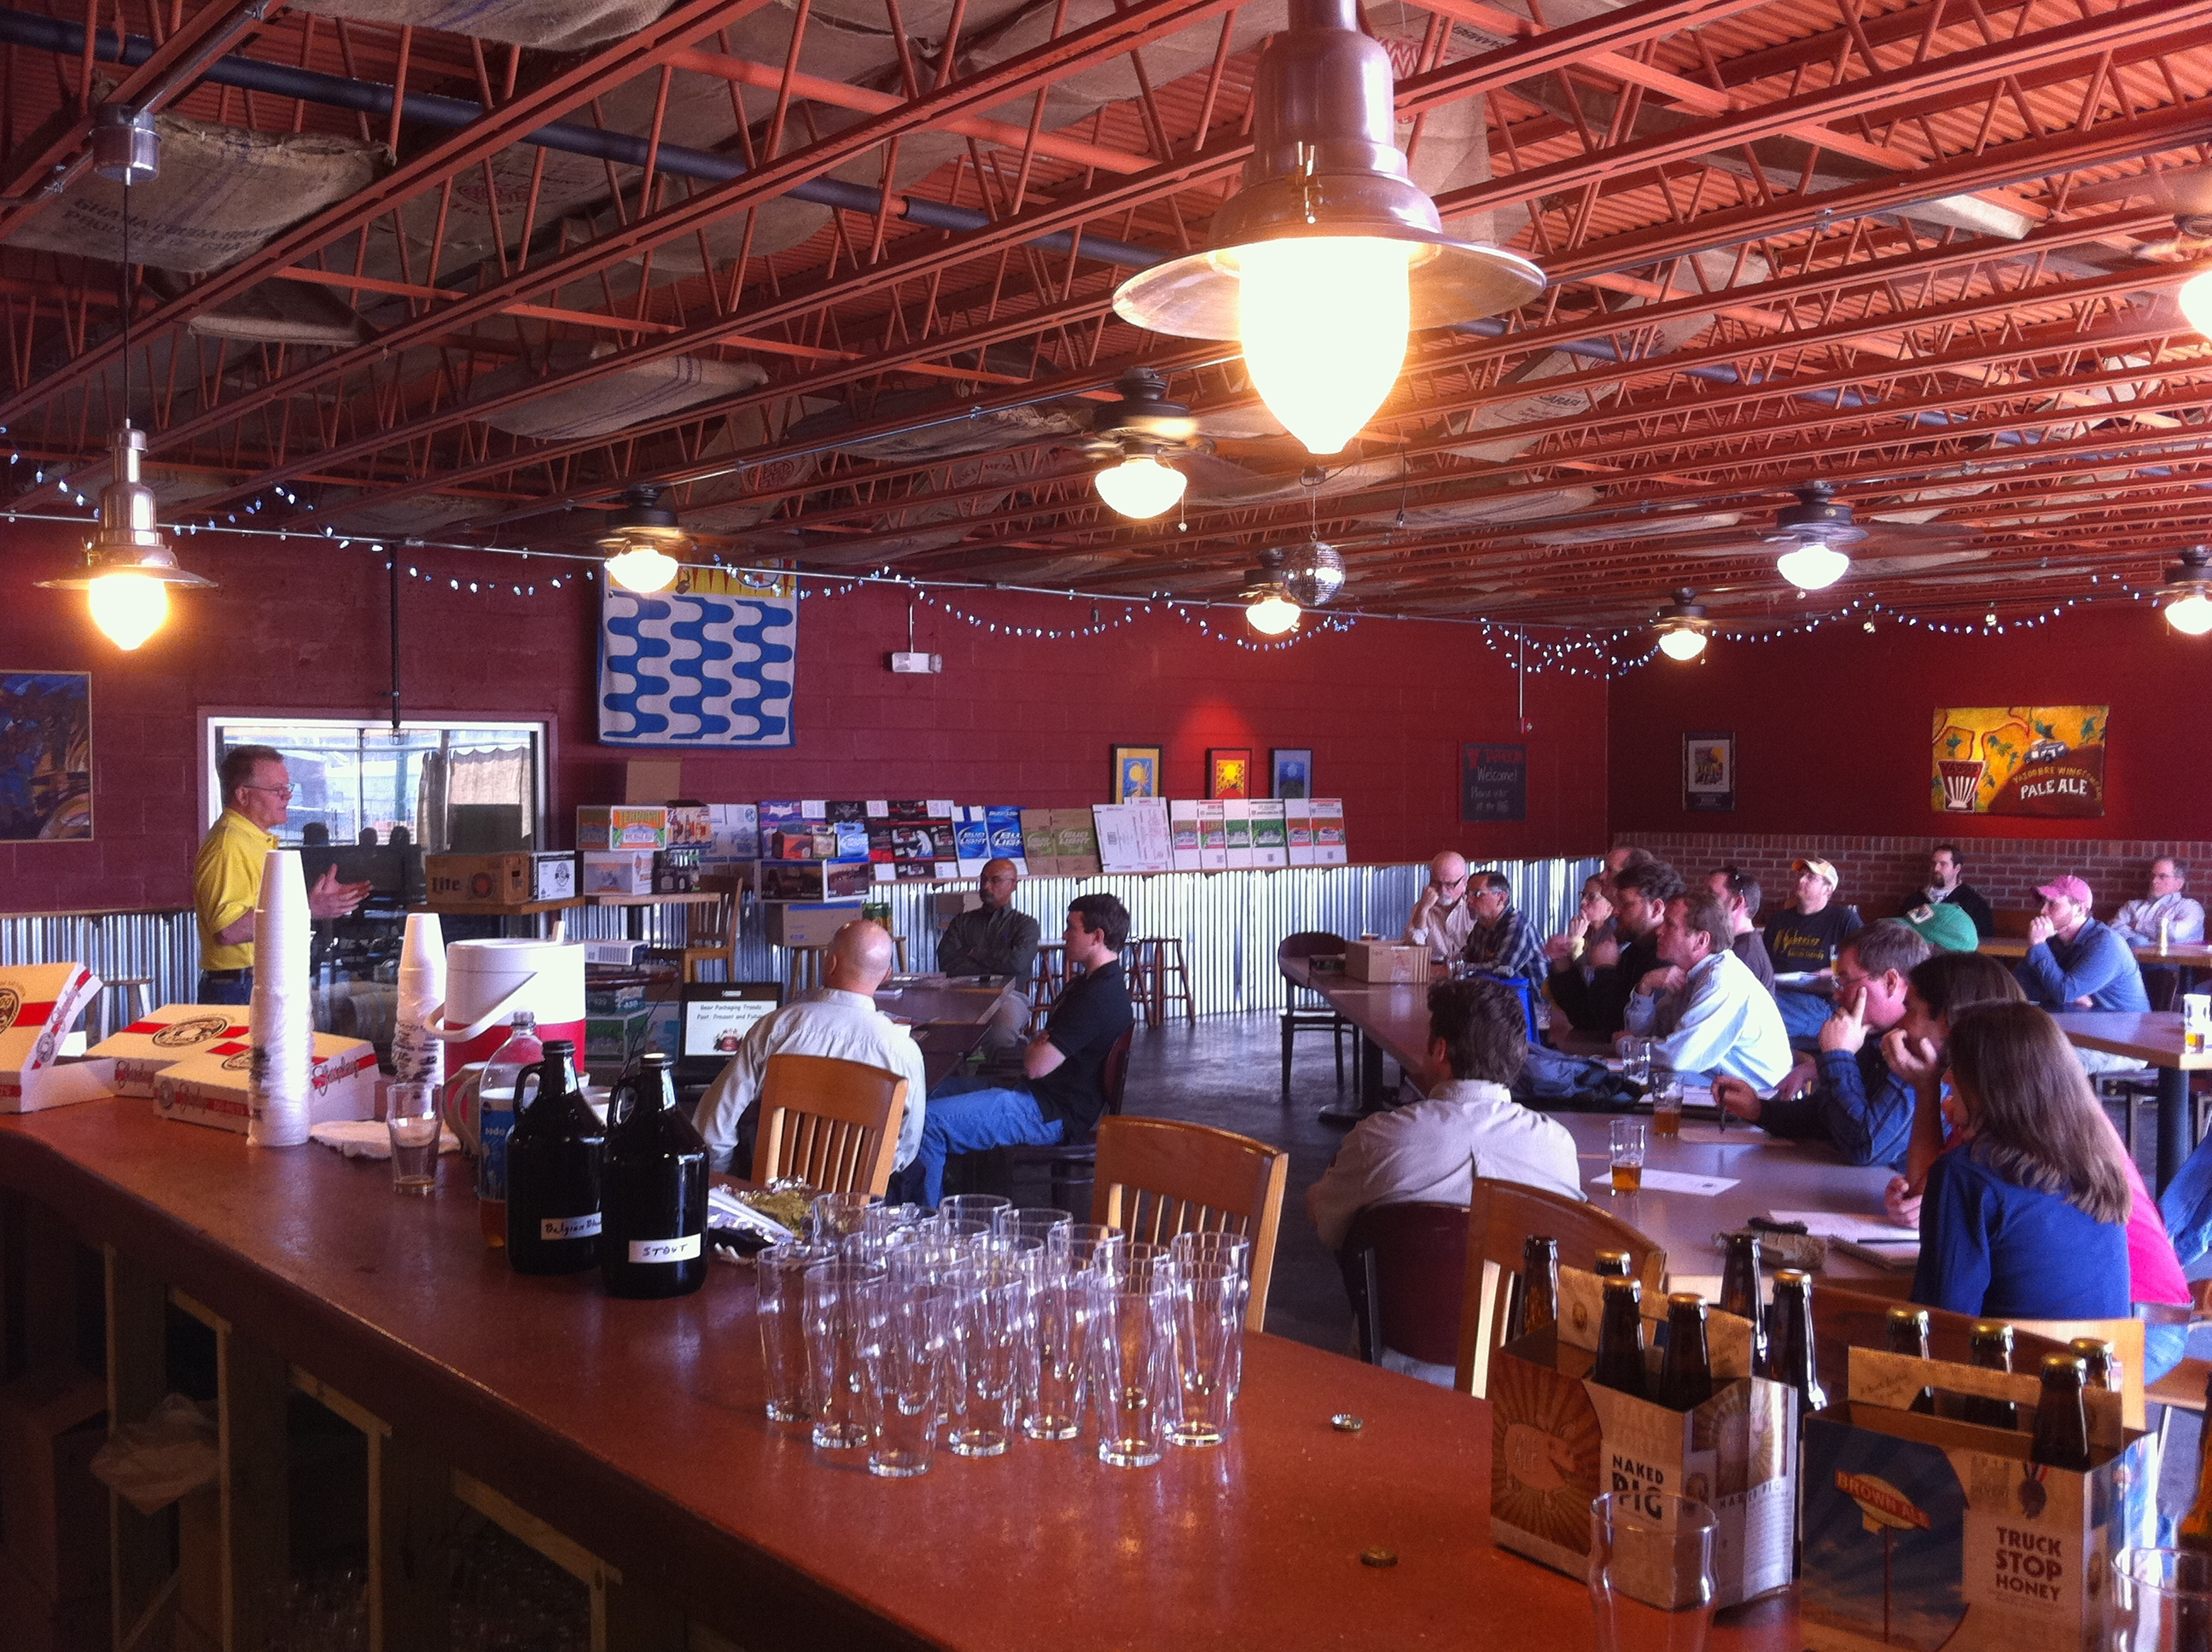 District Meeting - March 12, 2011 - Yazoo Brewing, Nashville, TN